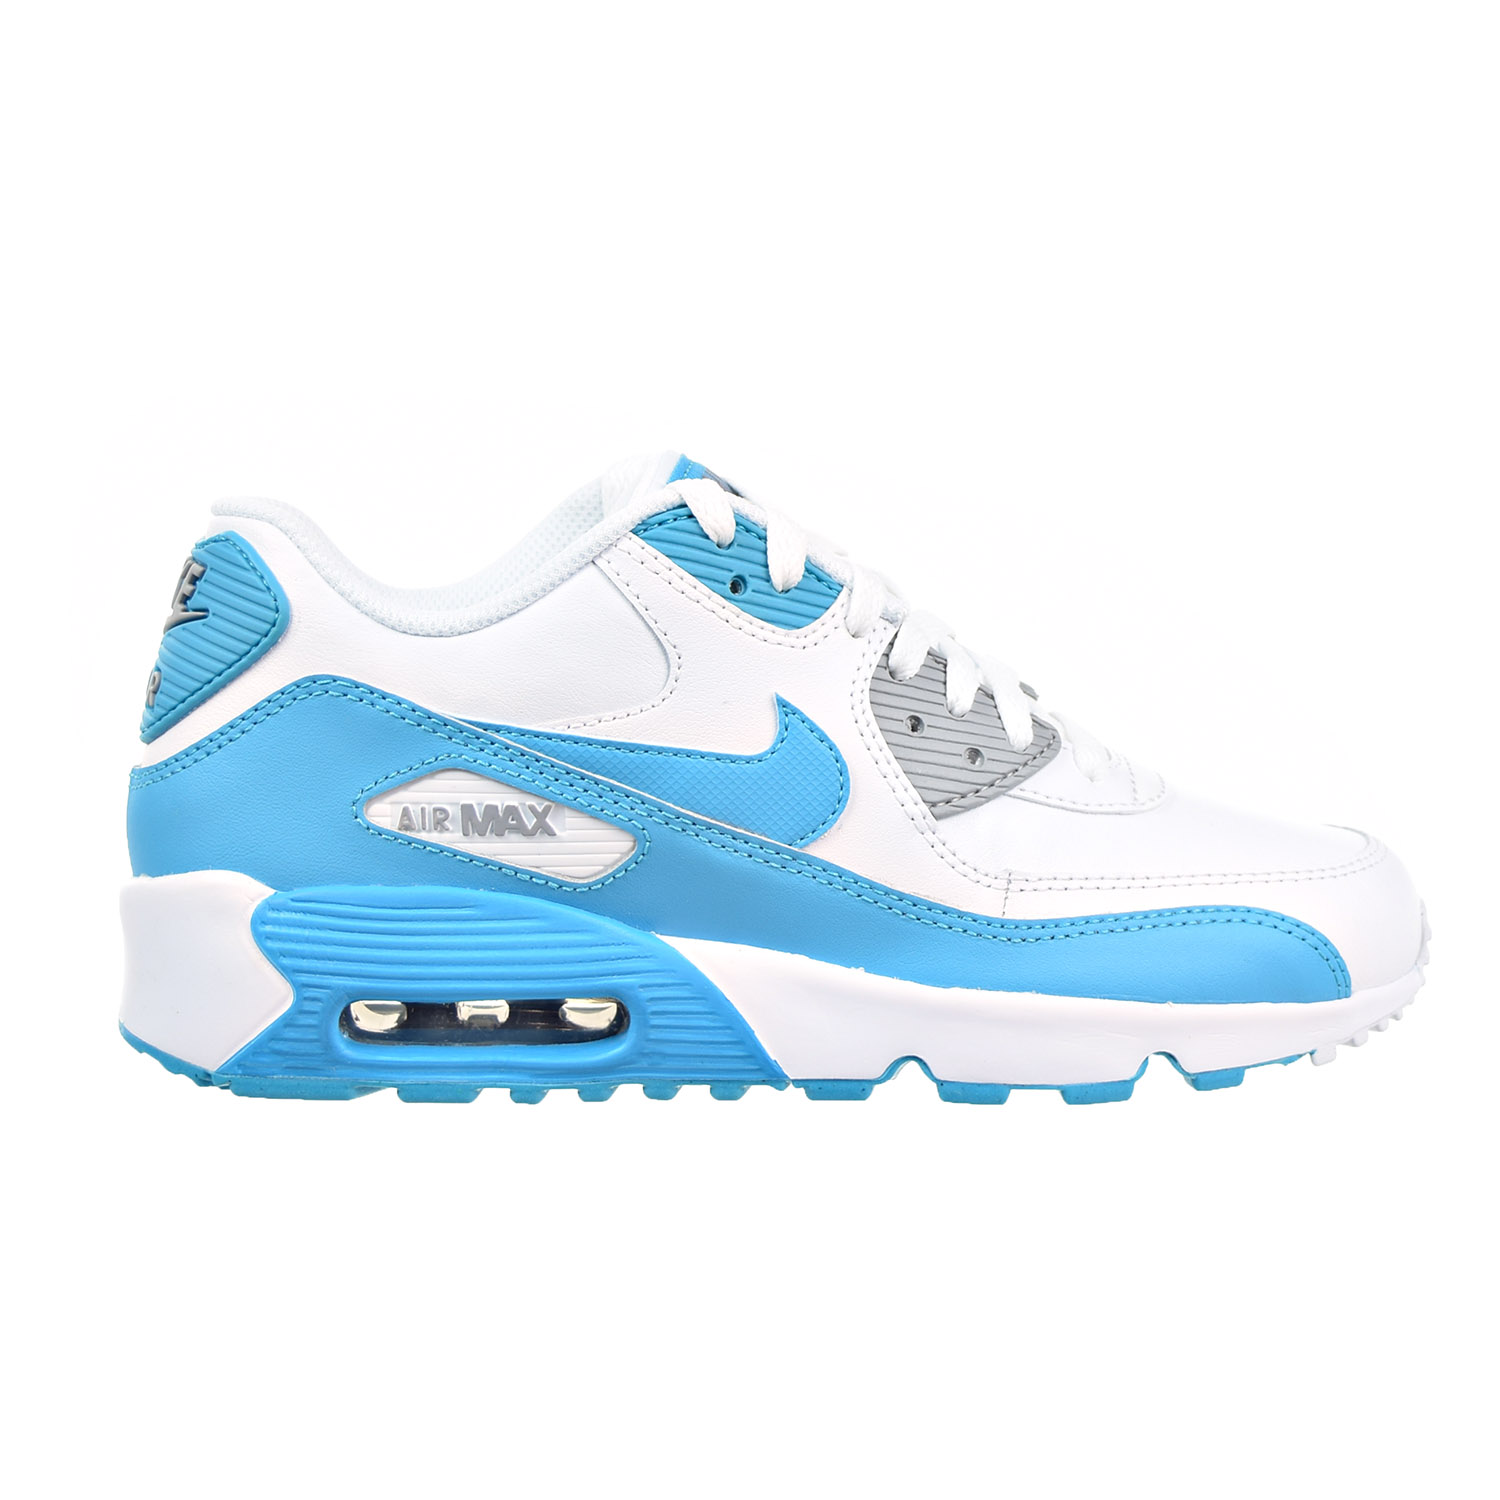 Details about Nike Air Max 90 LTR Big Kid's Shoes WhiteChlorine BlueWolf Grey 833376 101